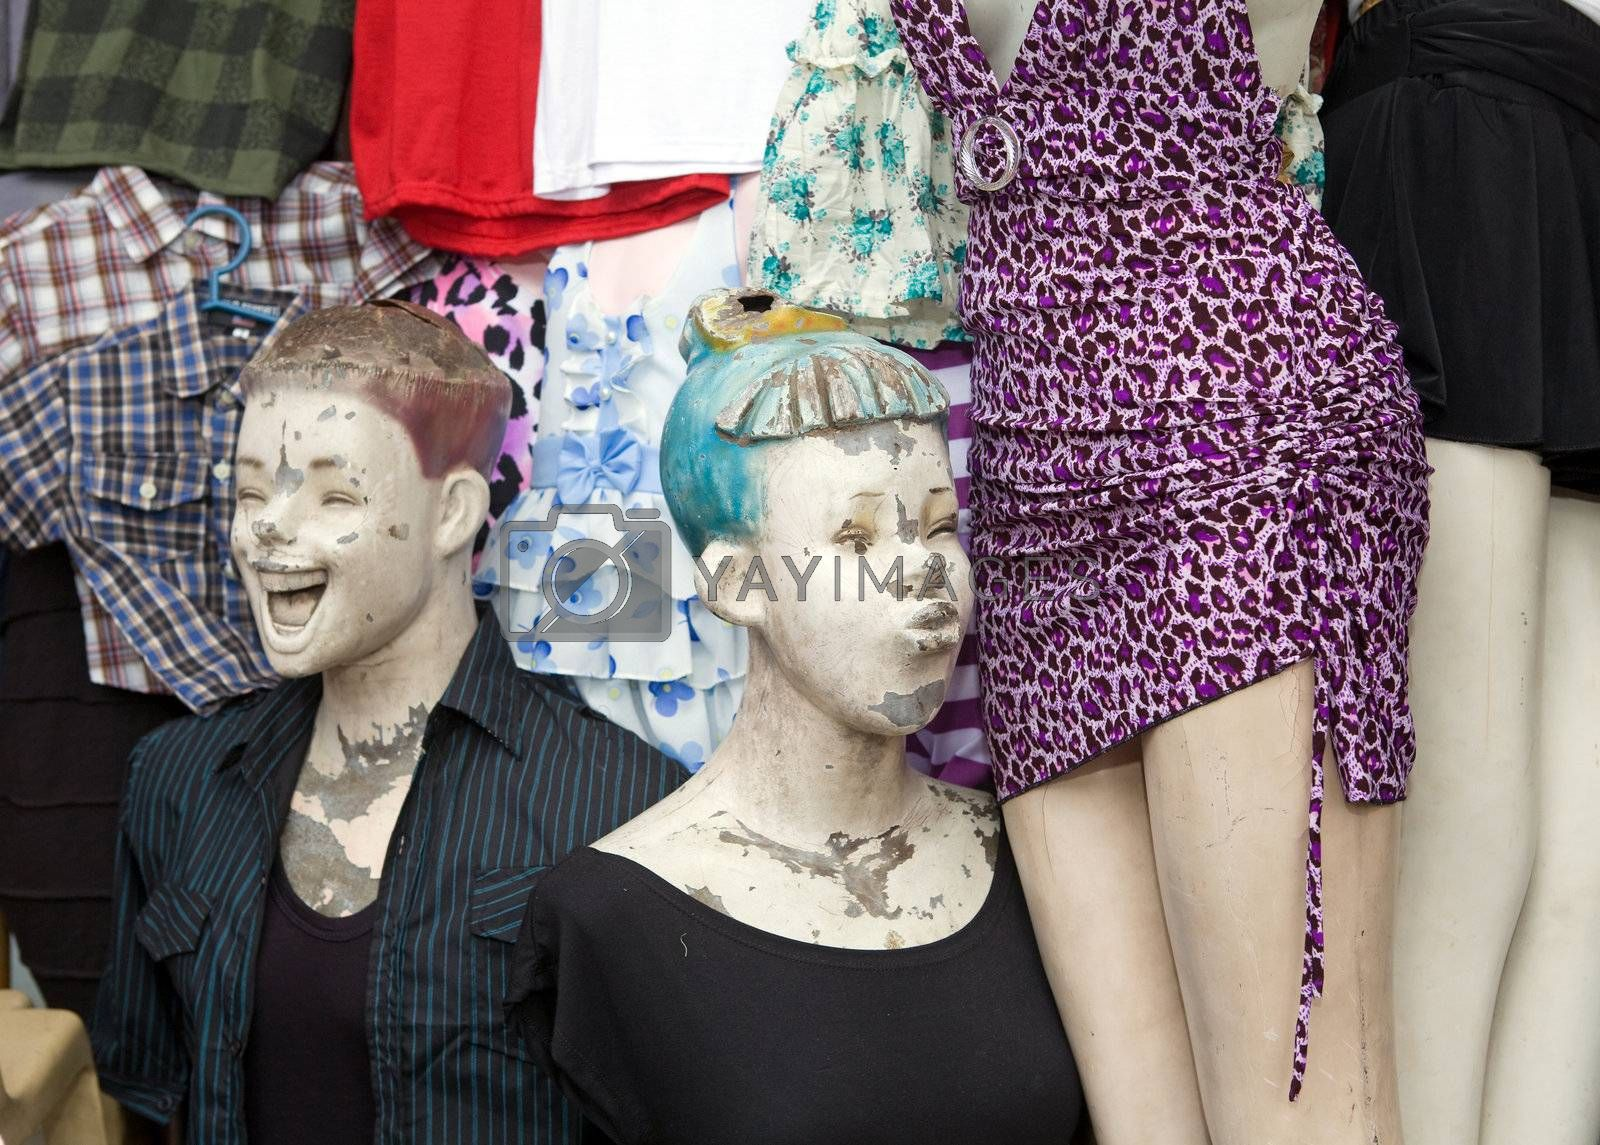 Two mannequin dummies outside a clothing store posed in a funny way. One is looking at the crotch of another dummy in a purple dress and the other is laughing.